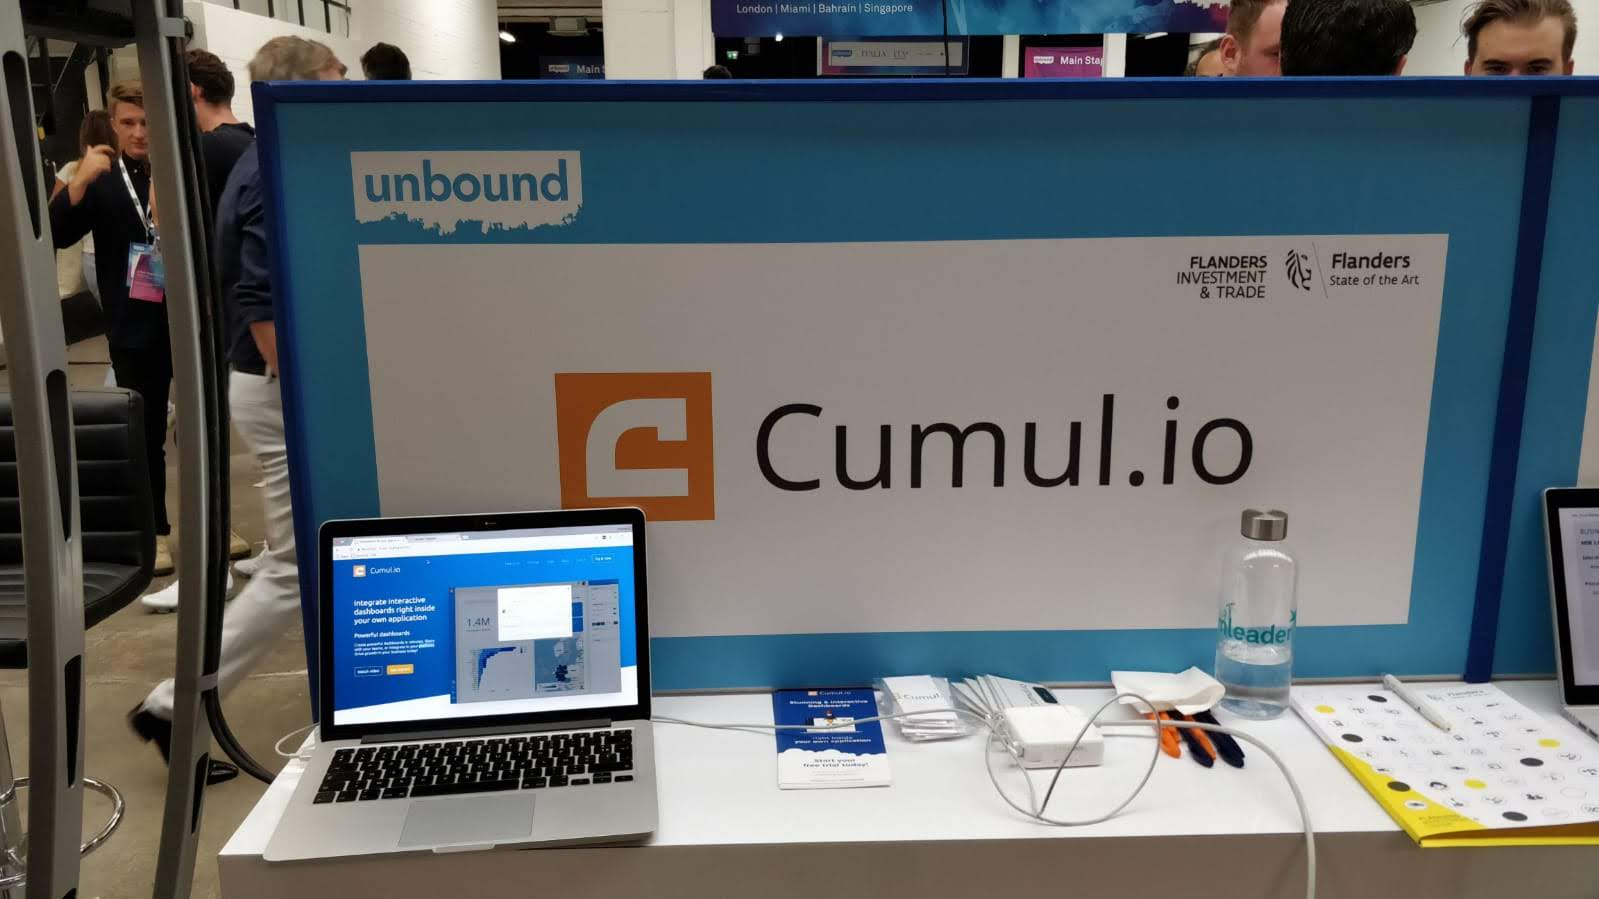 Cumul.io at Unbound London, introducing integrated analytics